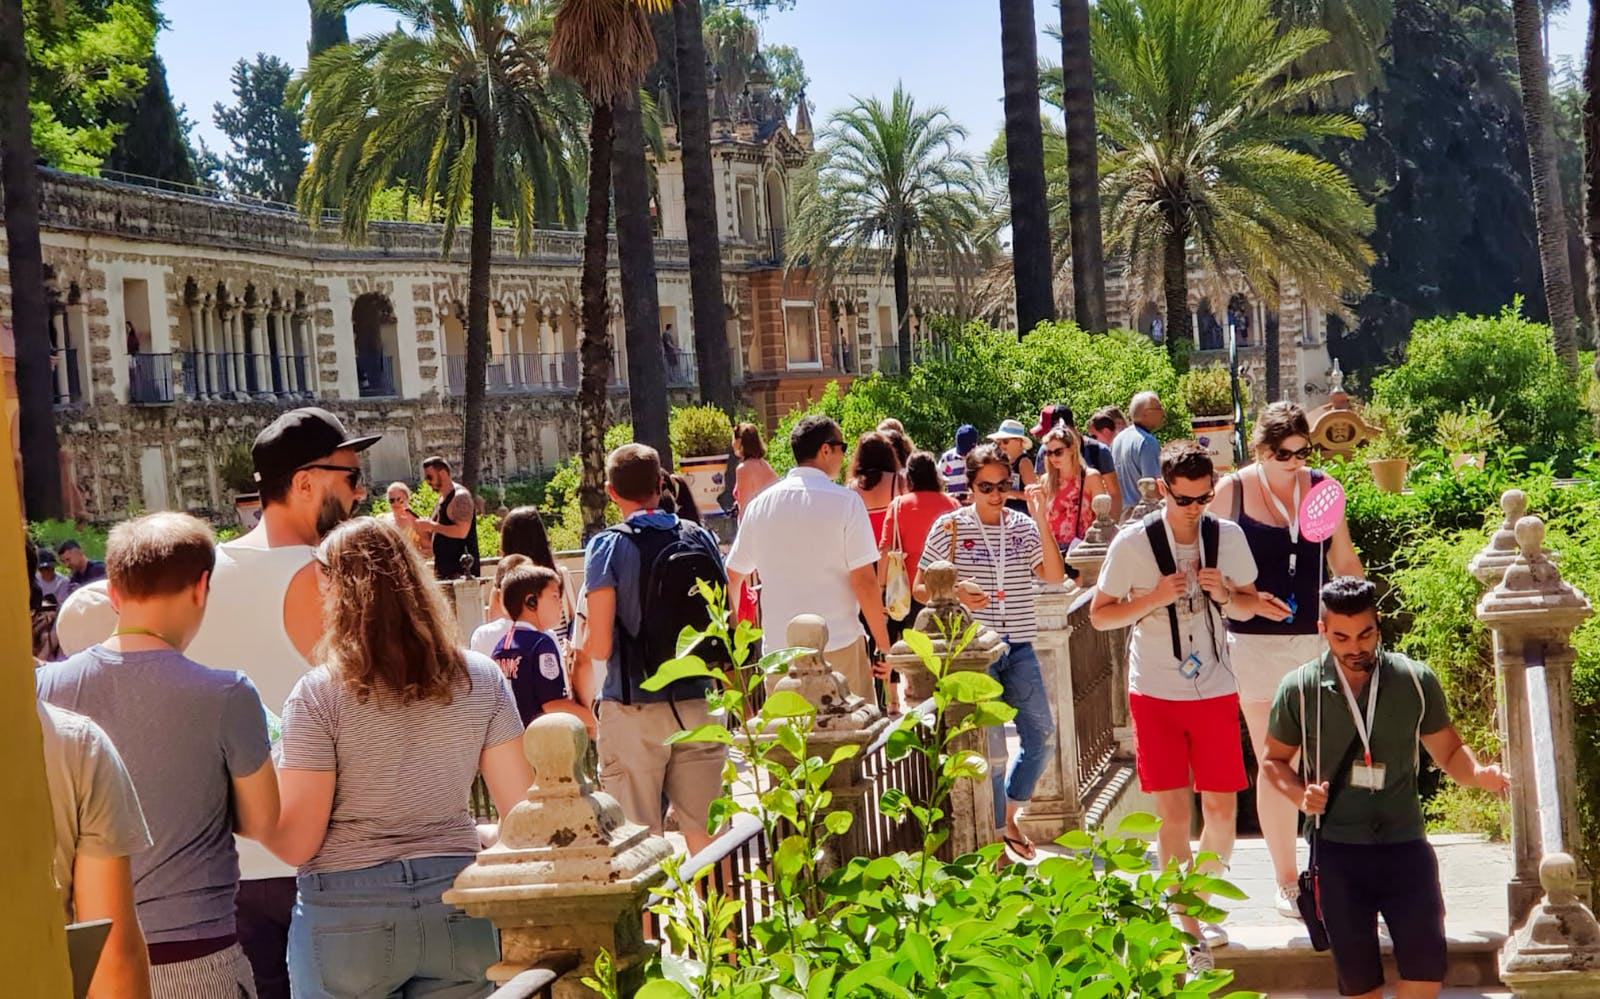 Seville Fascinating and Monumental (Alcazar, Cathedral and Giralda)